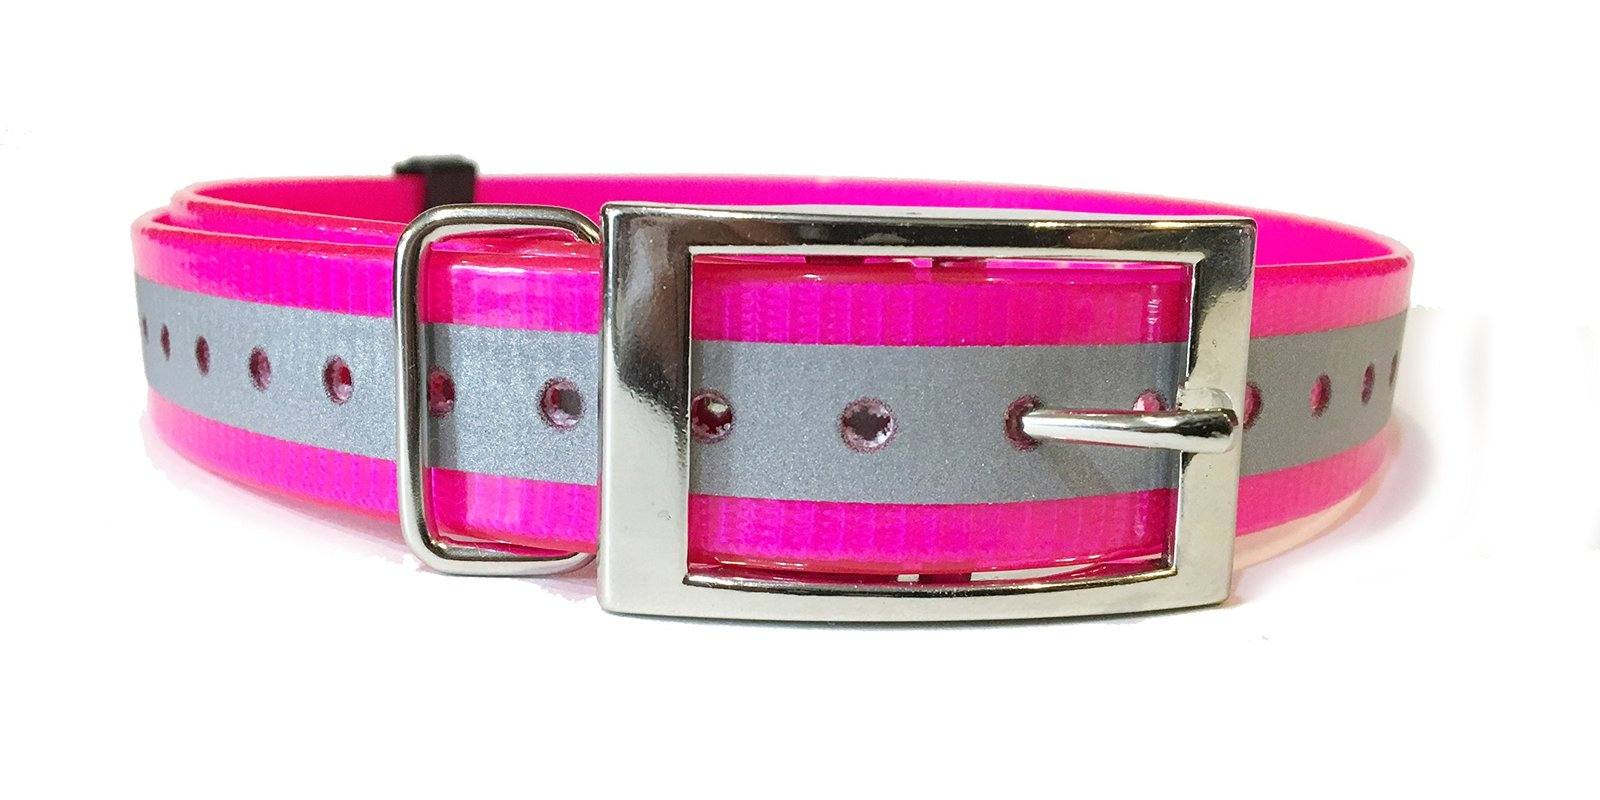 "SparkyPetCo 3/4"" Square Buckle High Flex Reflective Pink Dog Strap For Garmin..."